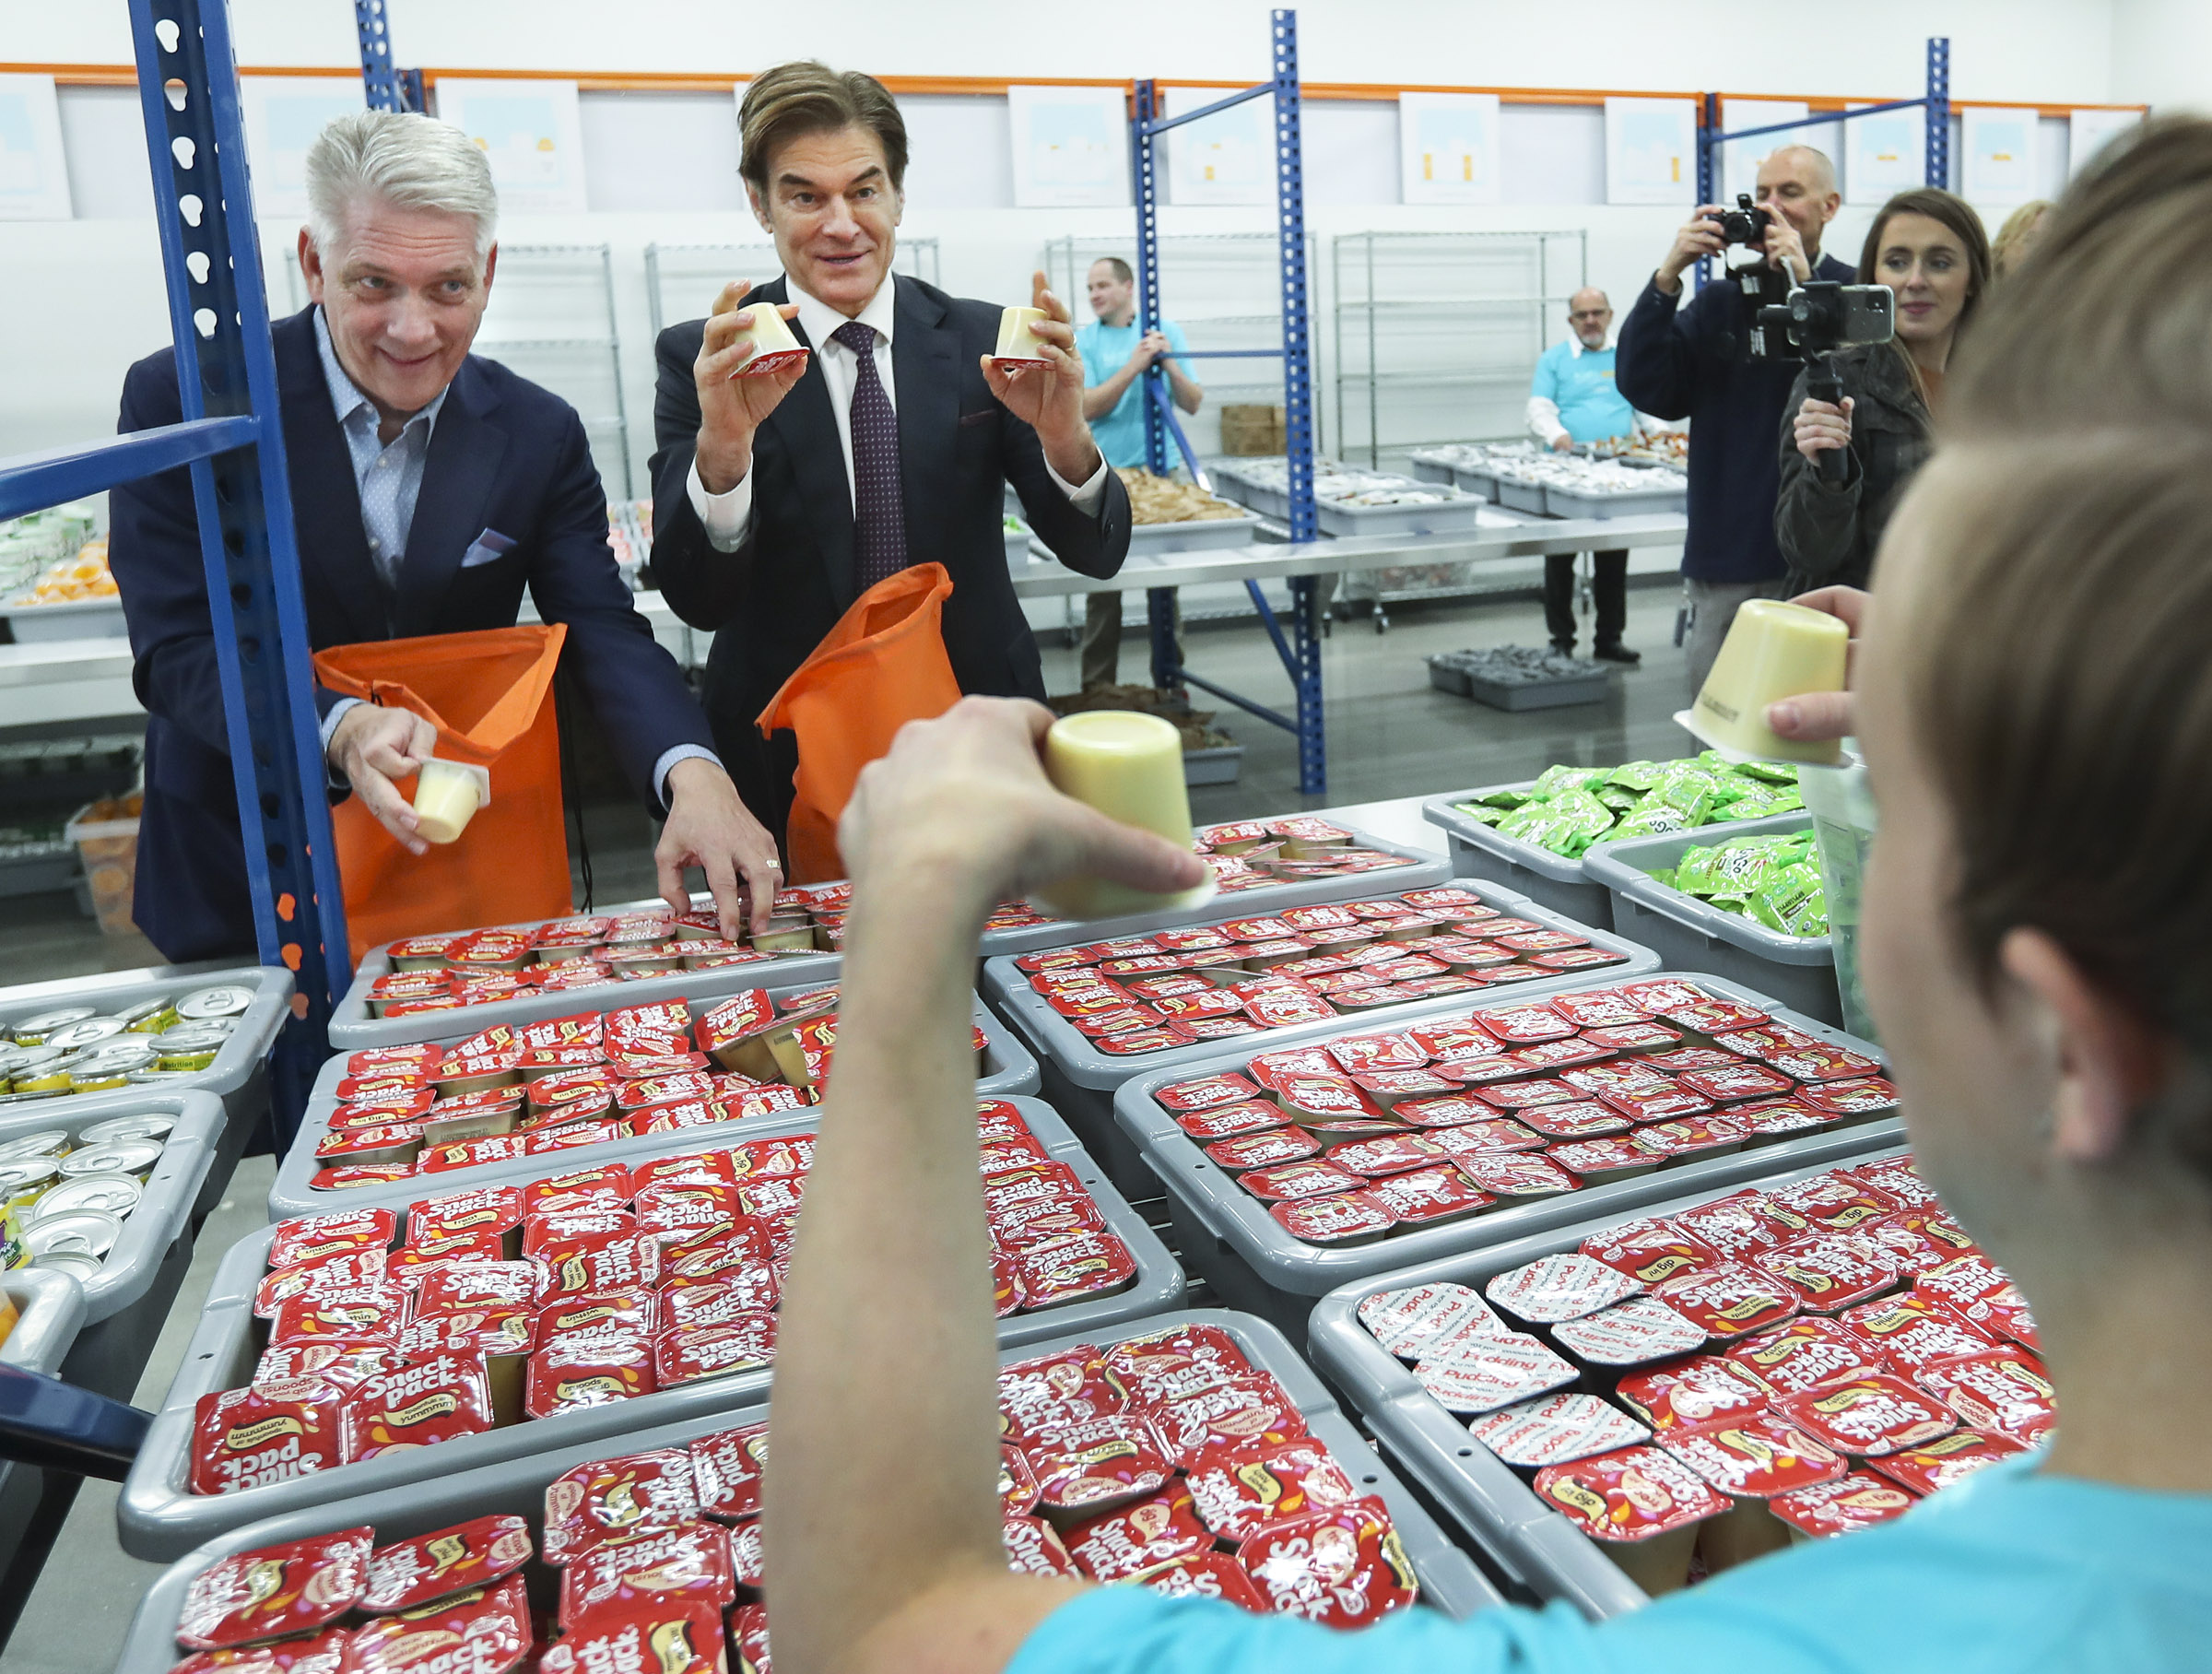 USANA CEO Kevin Guest, left, and Dr. Mehmet Oz fill bags with food as the USANA Kids Eat food-packing facility opens in West Valley City on Thursday, Dec. 19, 2019. To try to eliminate the issue of 1 in 5 Utah kids going home to no food, the organization will pack 1,000 backpacks with food for seven meals in them each week for distribution to 56,000 children in Utah.